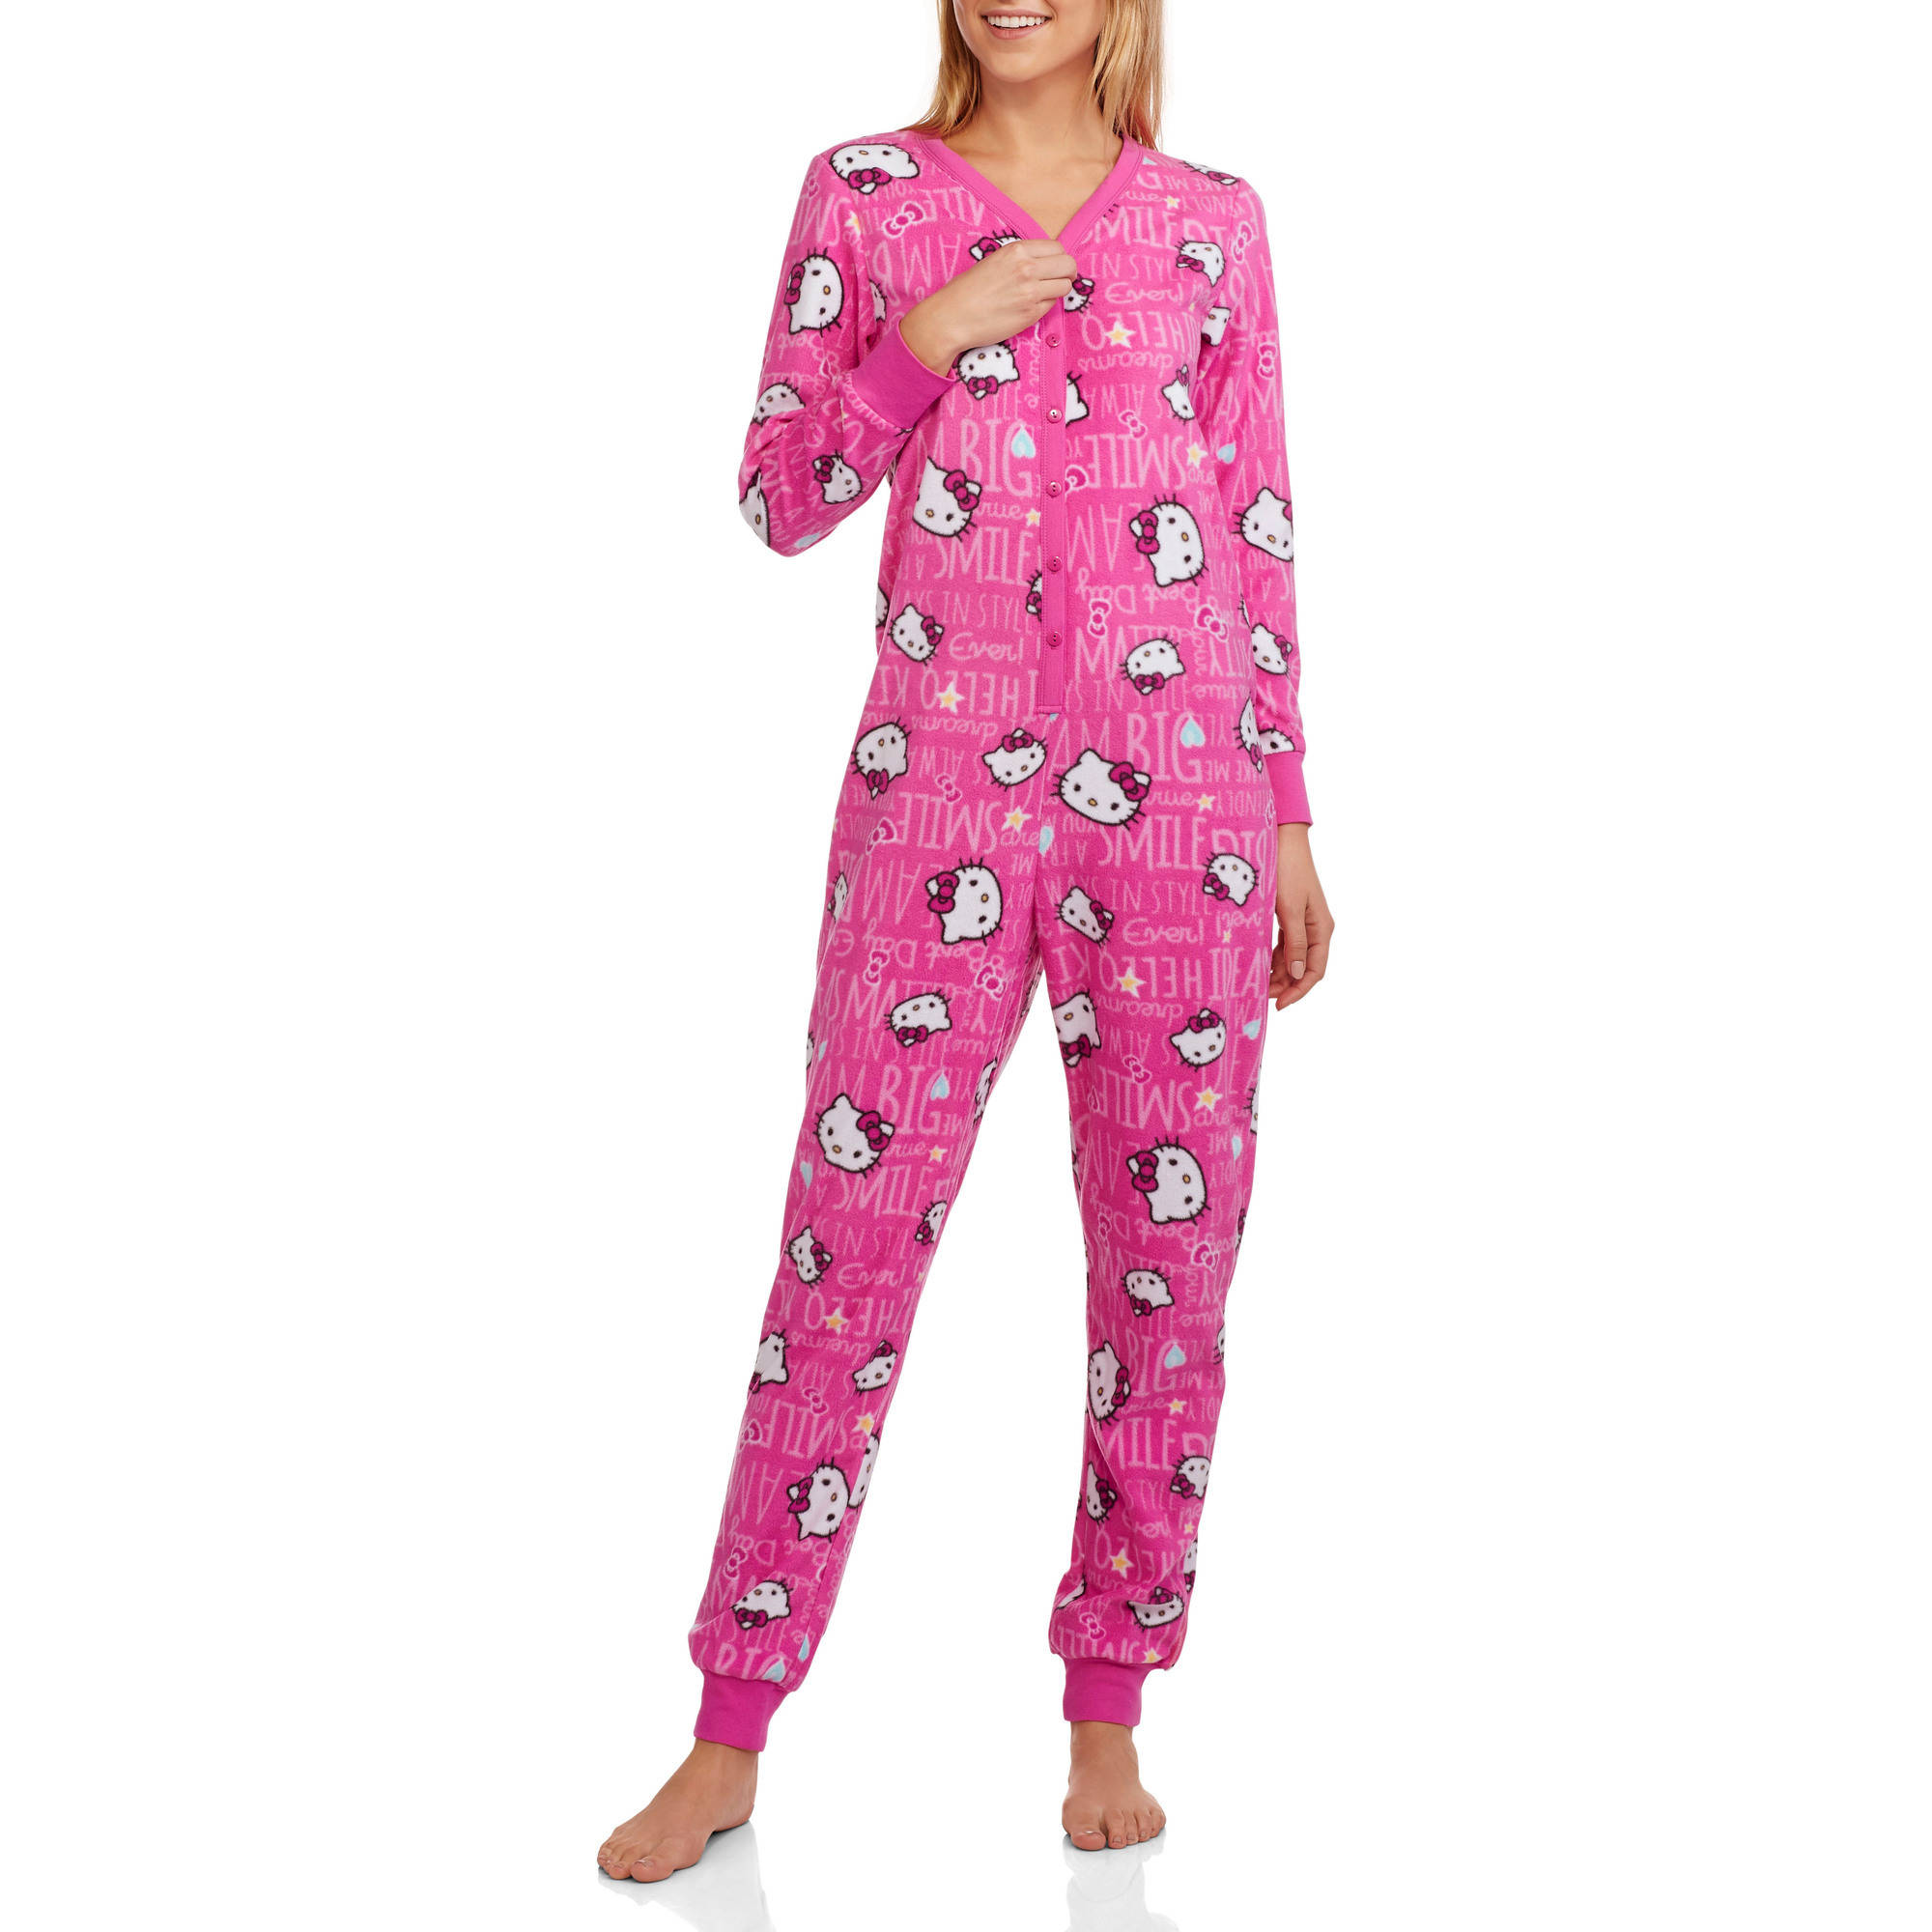 Hello Kitty Women's Licensed Pajama Union Suit Drop Seat One Piece Sleepwear